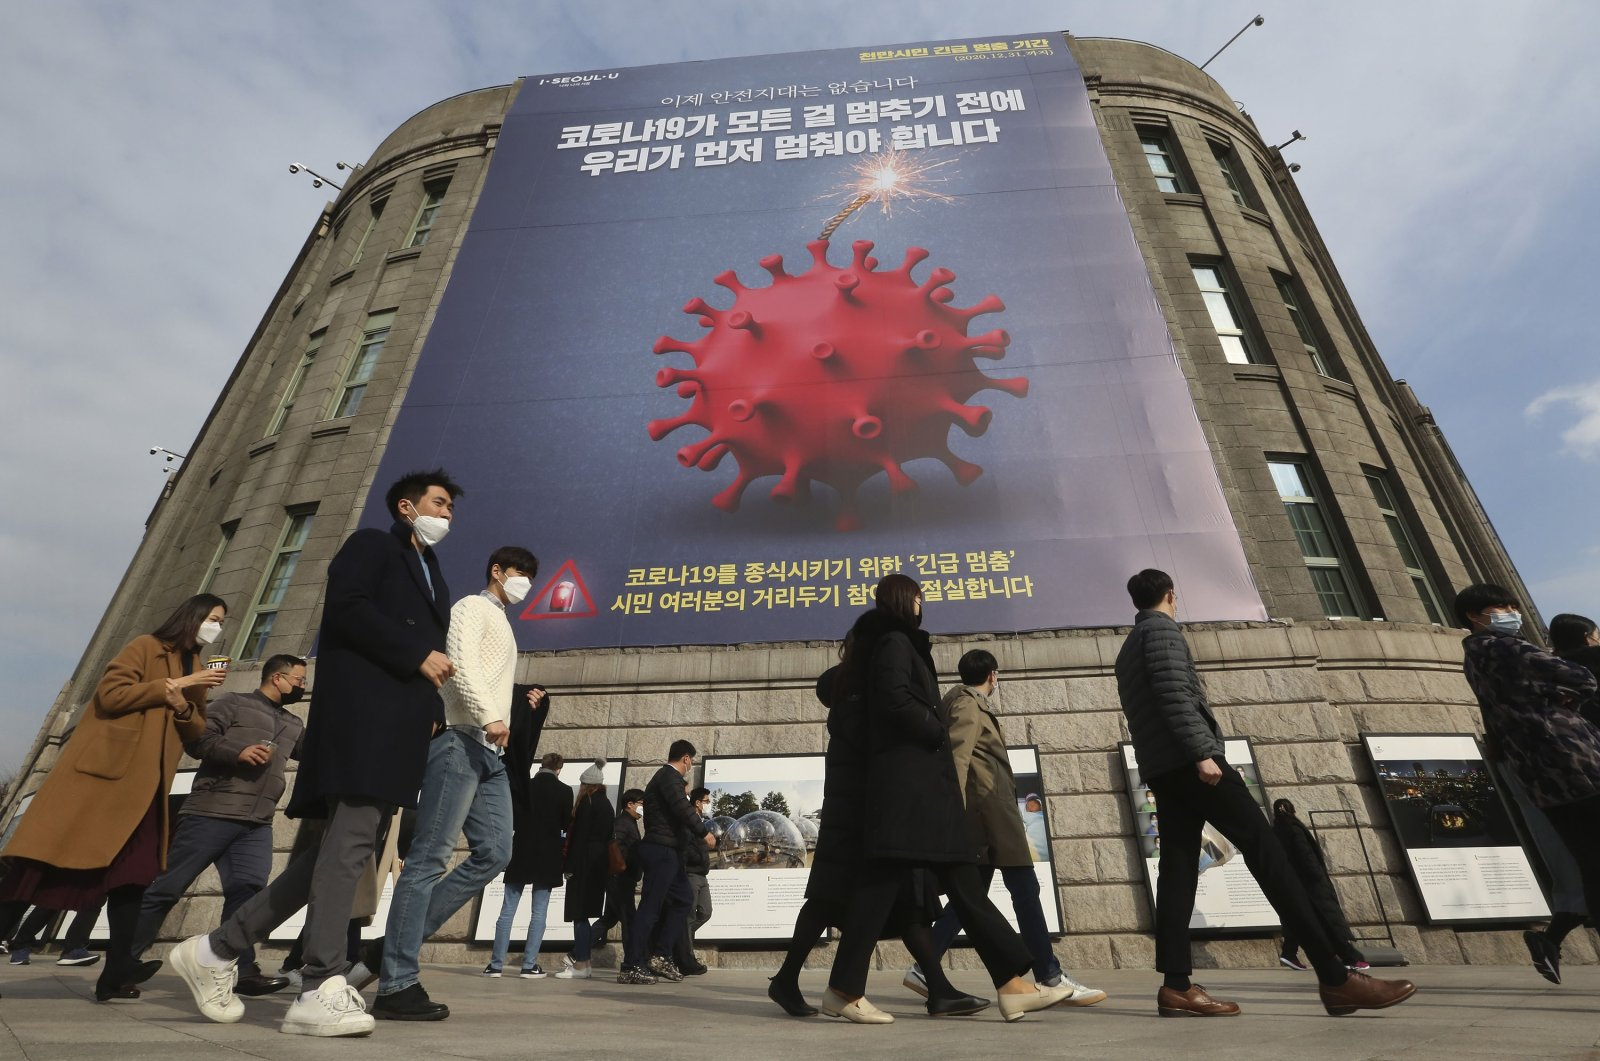 People wearing masks as a precaution against the coronavirus walk under a banner emphasizing an enhanced social distancing campaign in front of Seoul City Hall in Seoul, South Korea, on Nov. 25, 2020. (AP Photo)